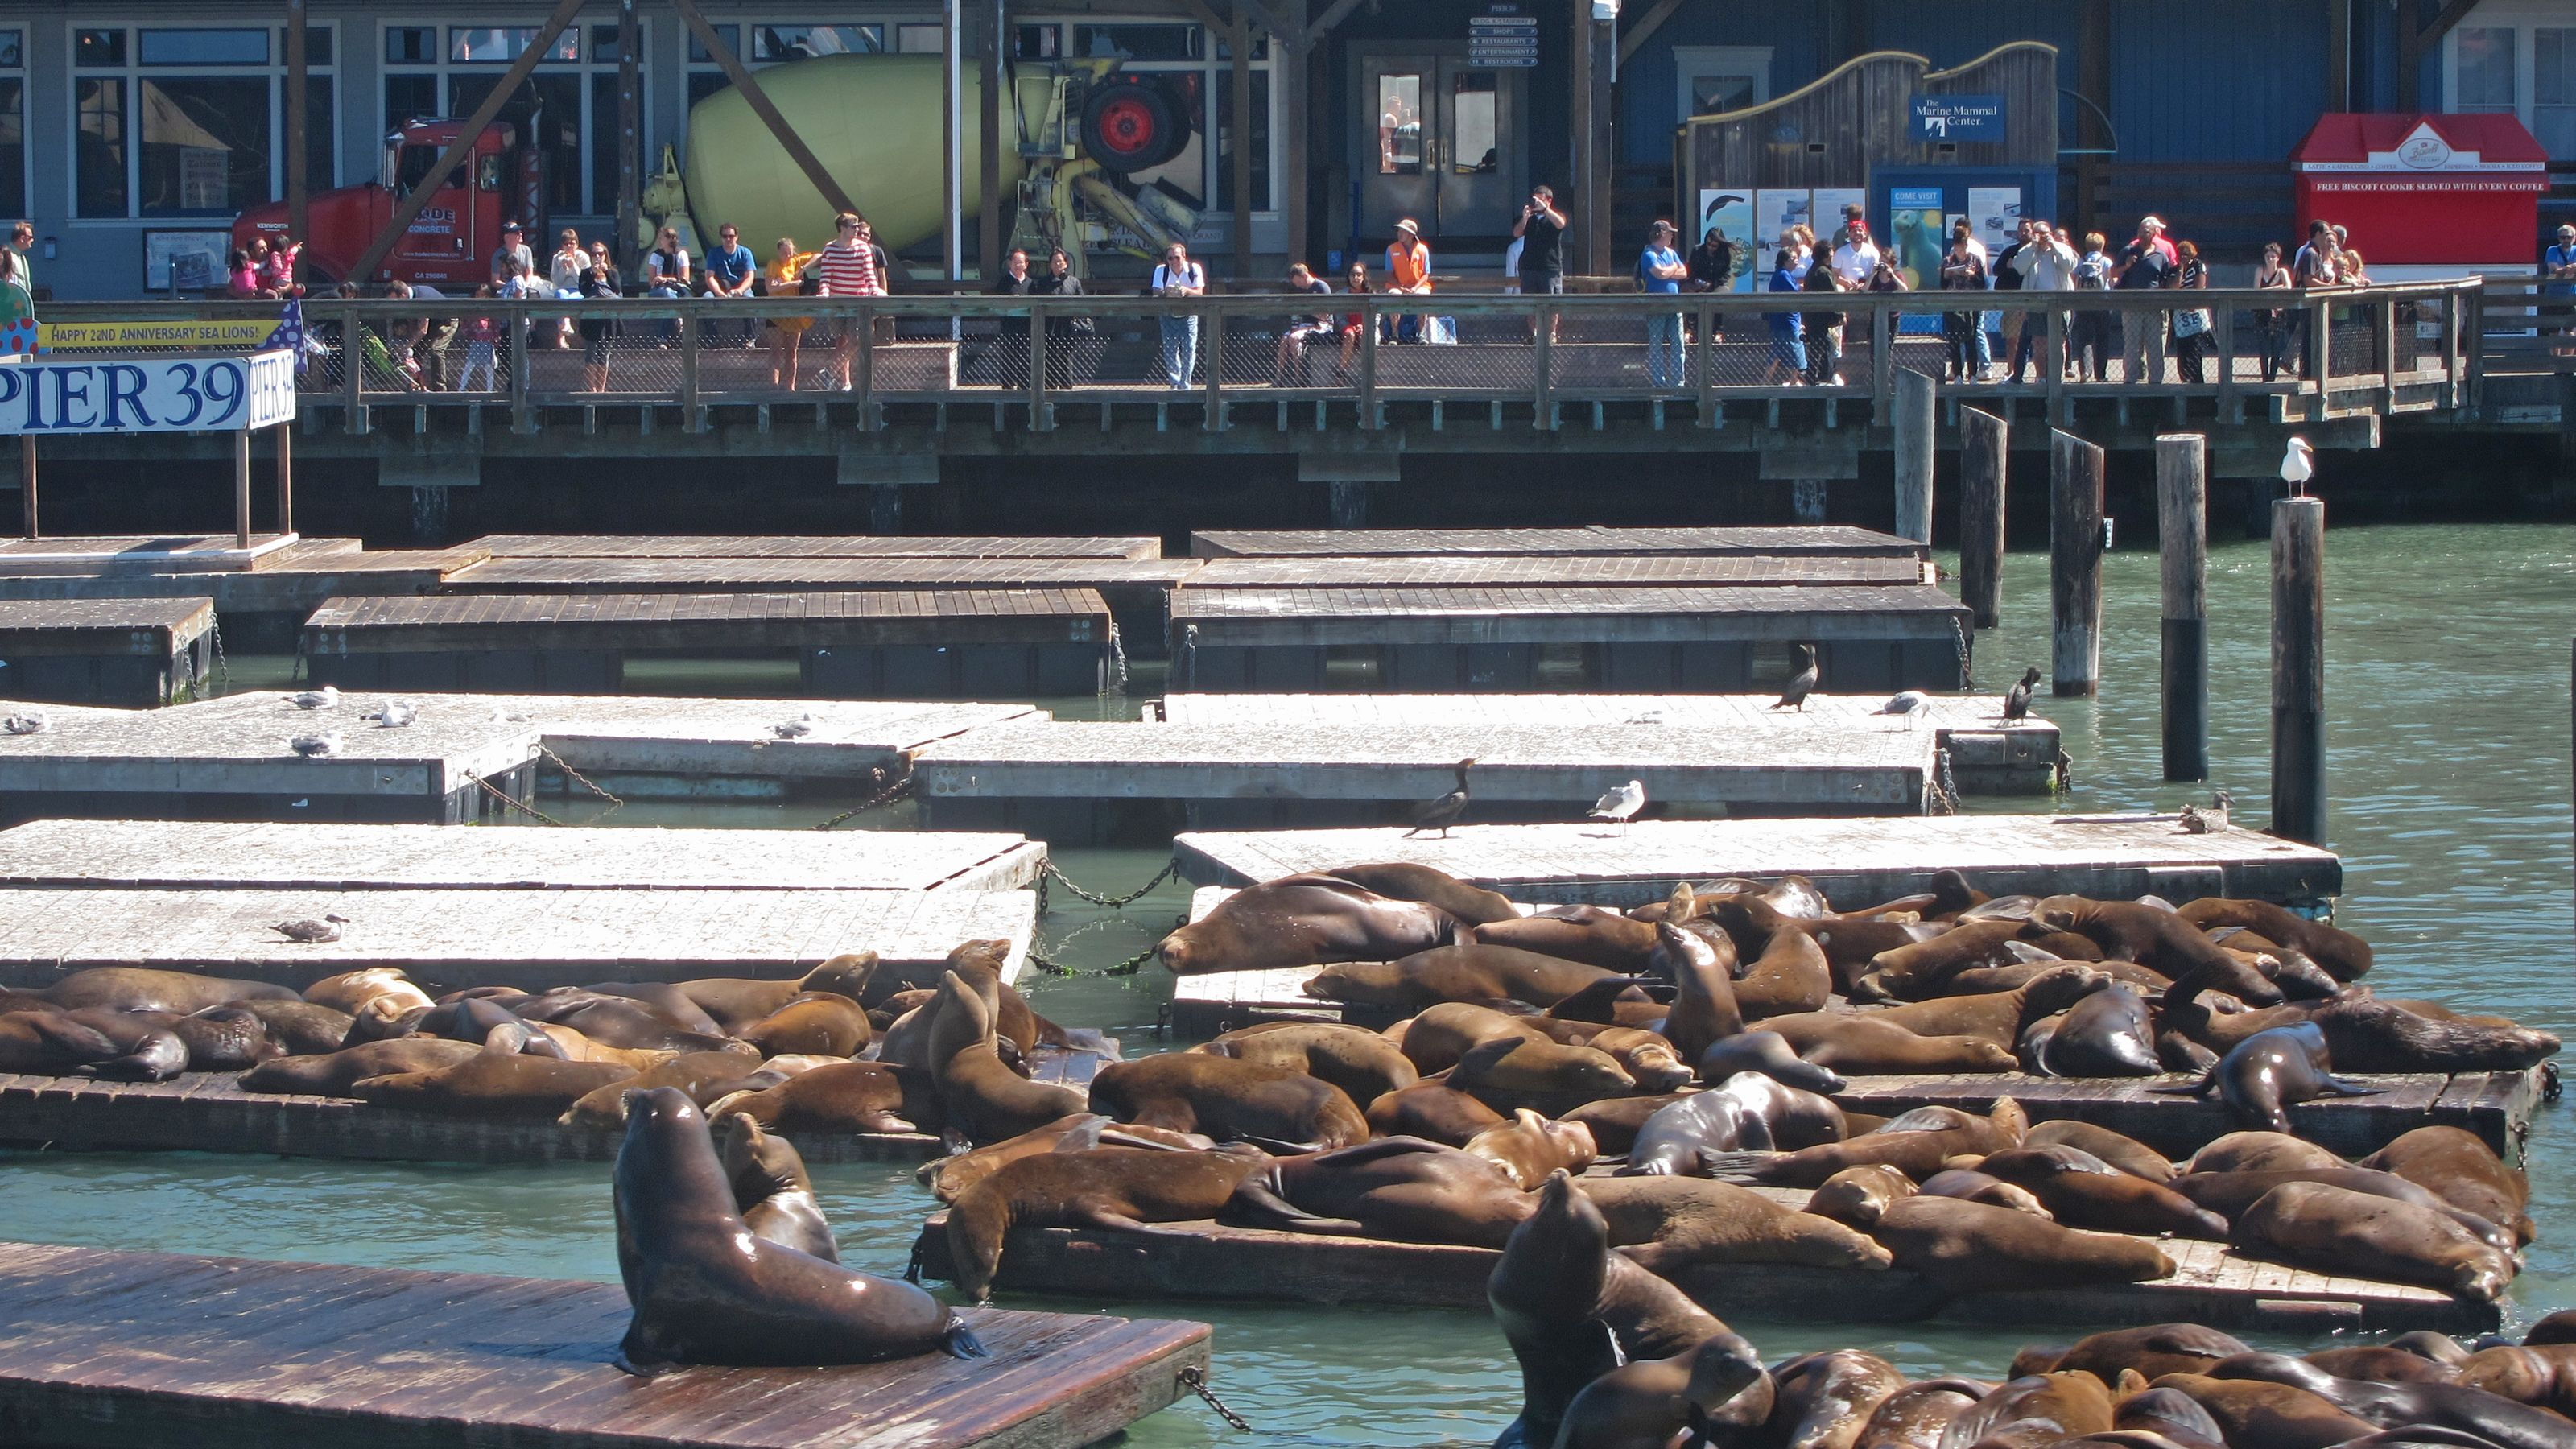 Seal lions hauled out on piers in San Francisco